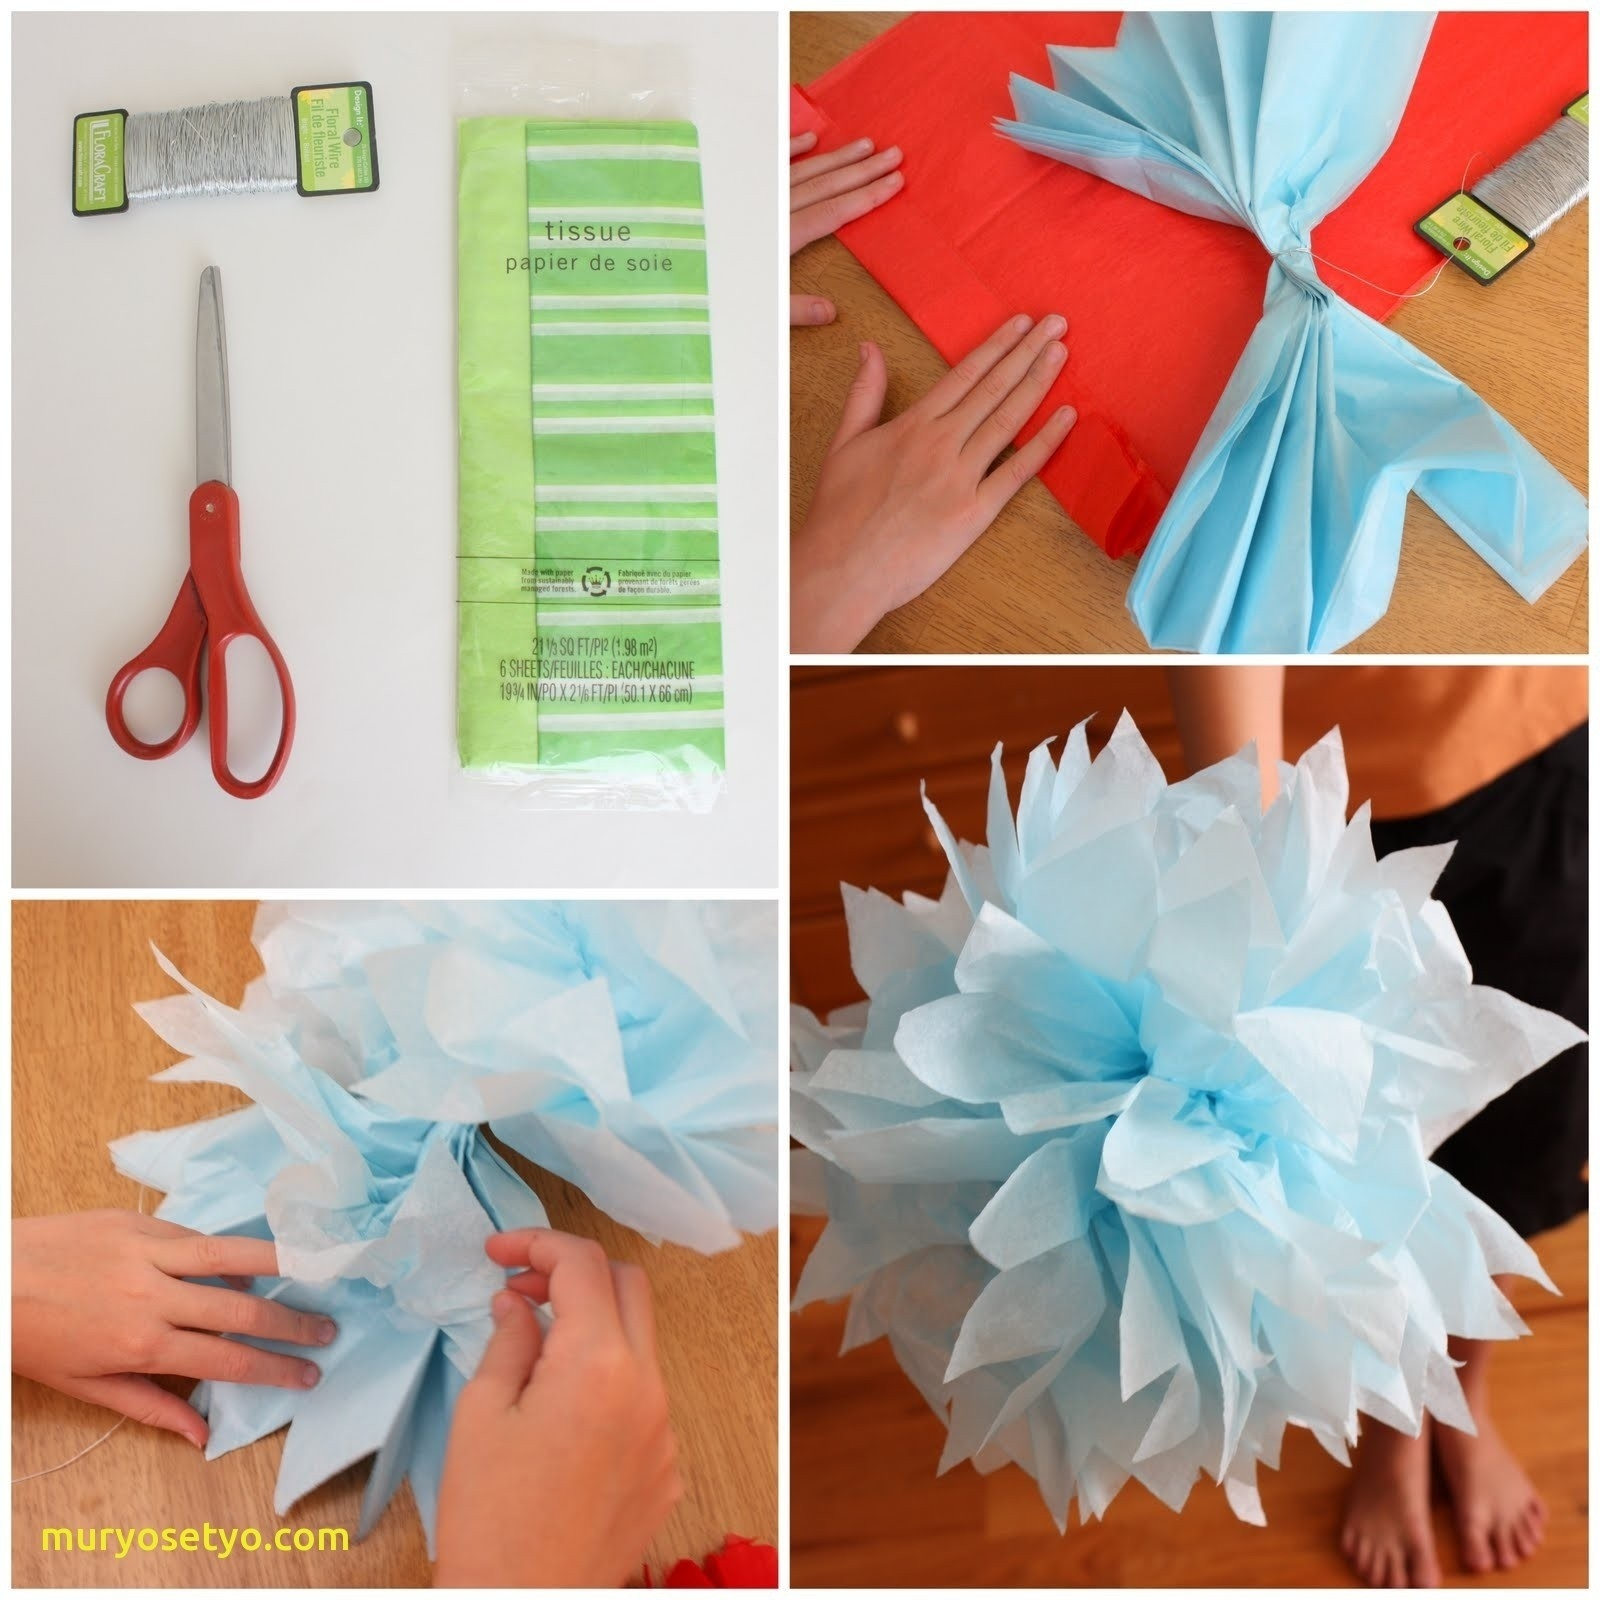 Tissue Paper Crafts For Adults | World Of Example pertaining to Tissue Paper Crafts For Adults 26523